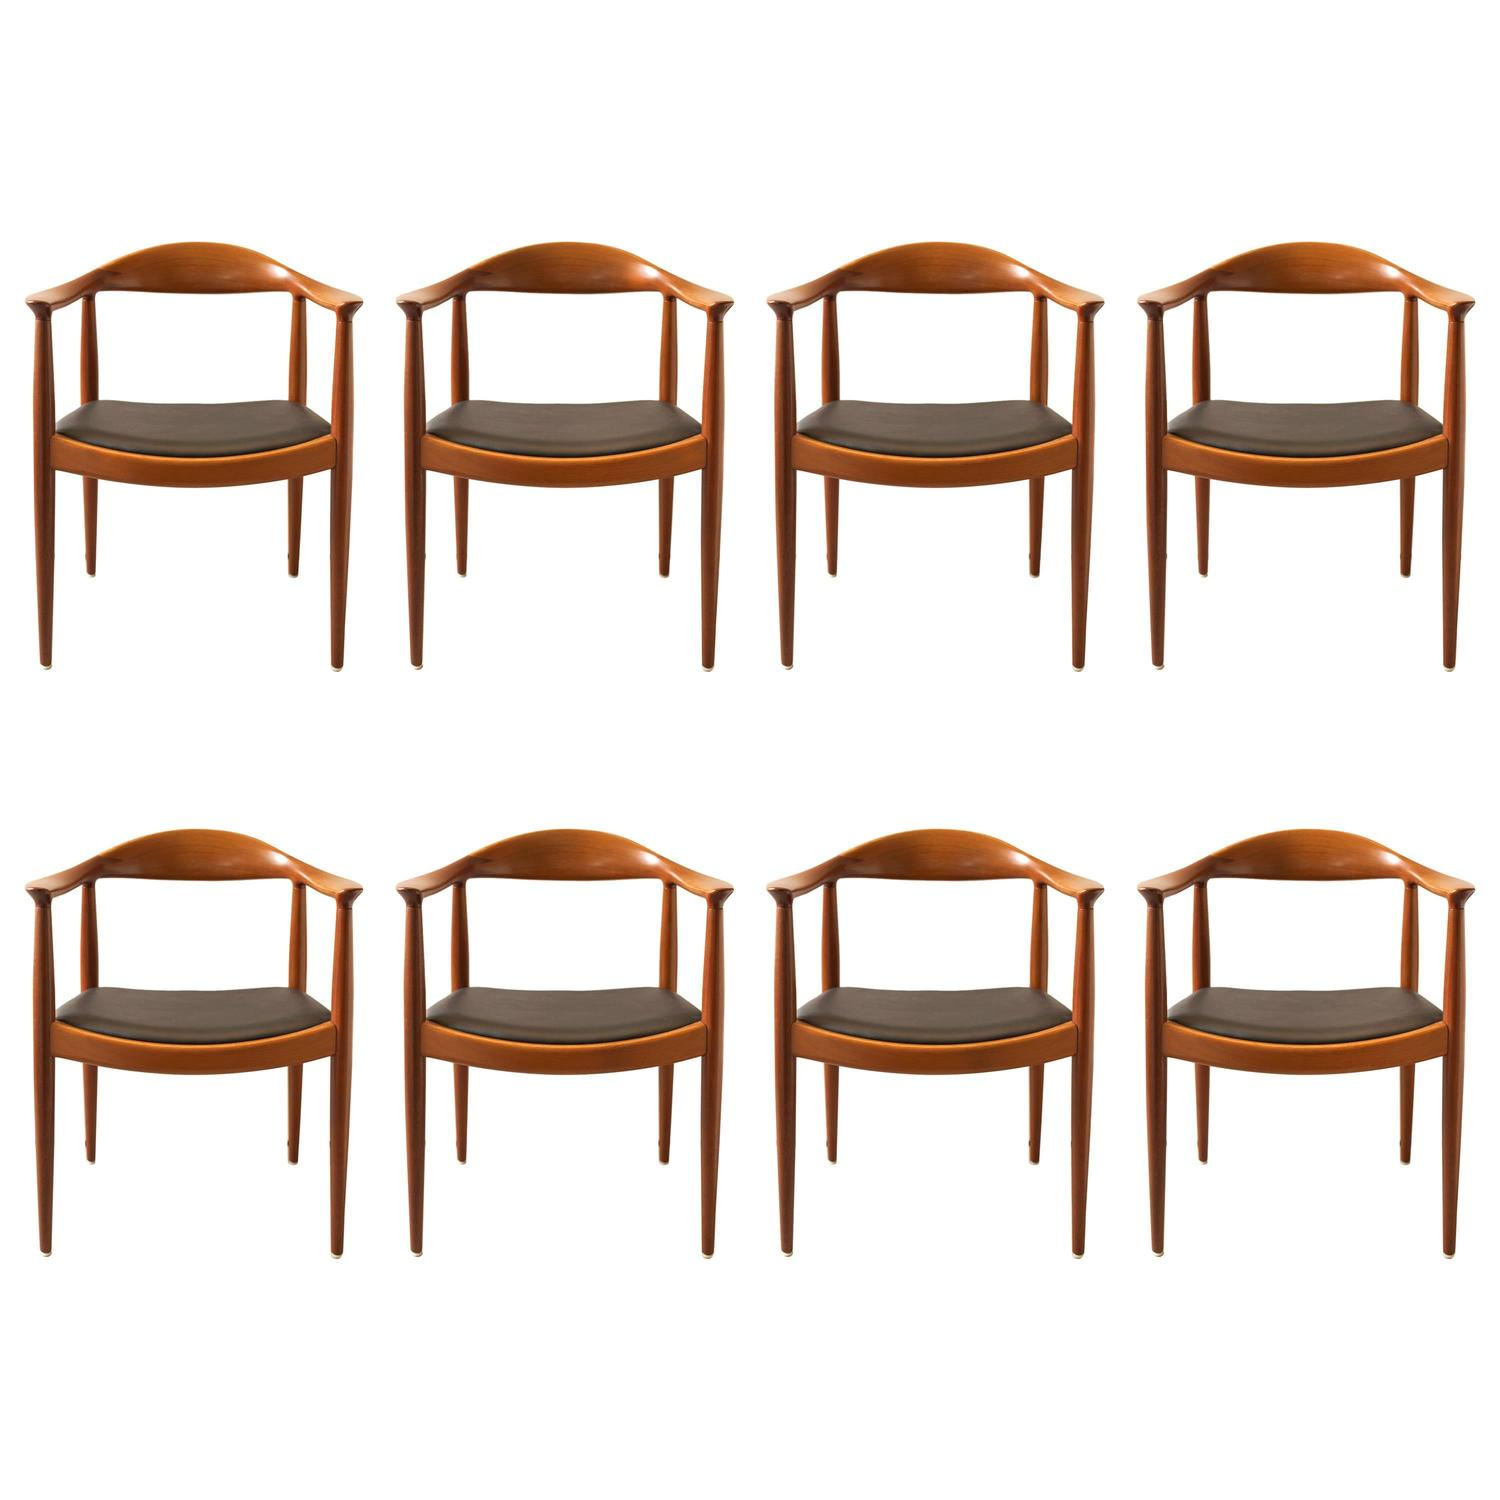 Hans wegner set of eight round back dining chairs in for Wegner dining chair